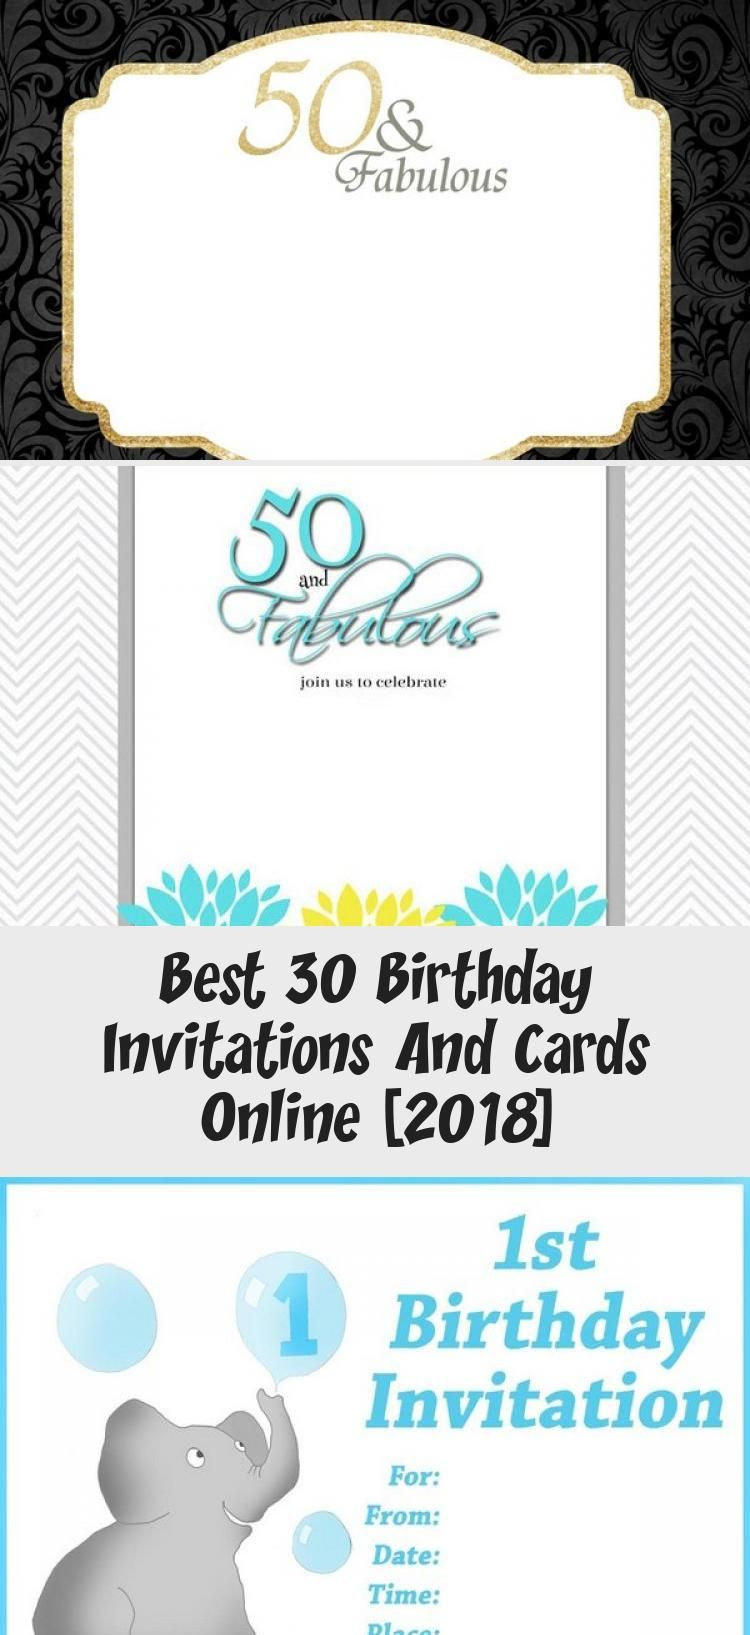 Best 30 Birthday Invitations And Cards Online 2018 In 2020 30th